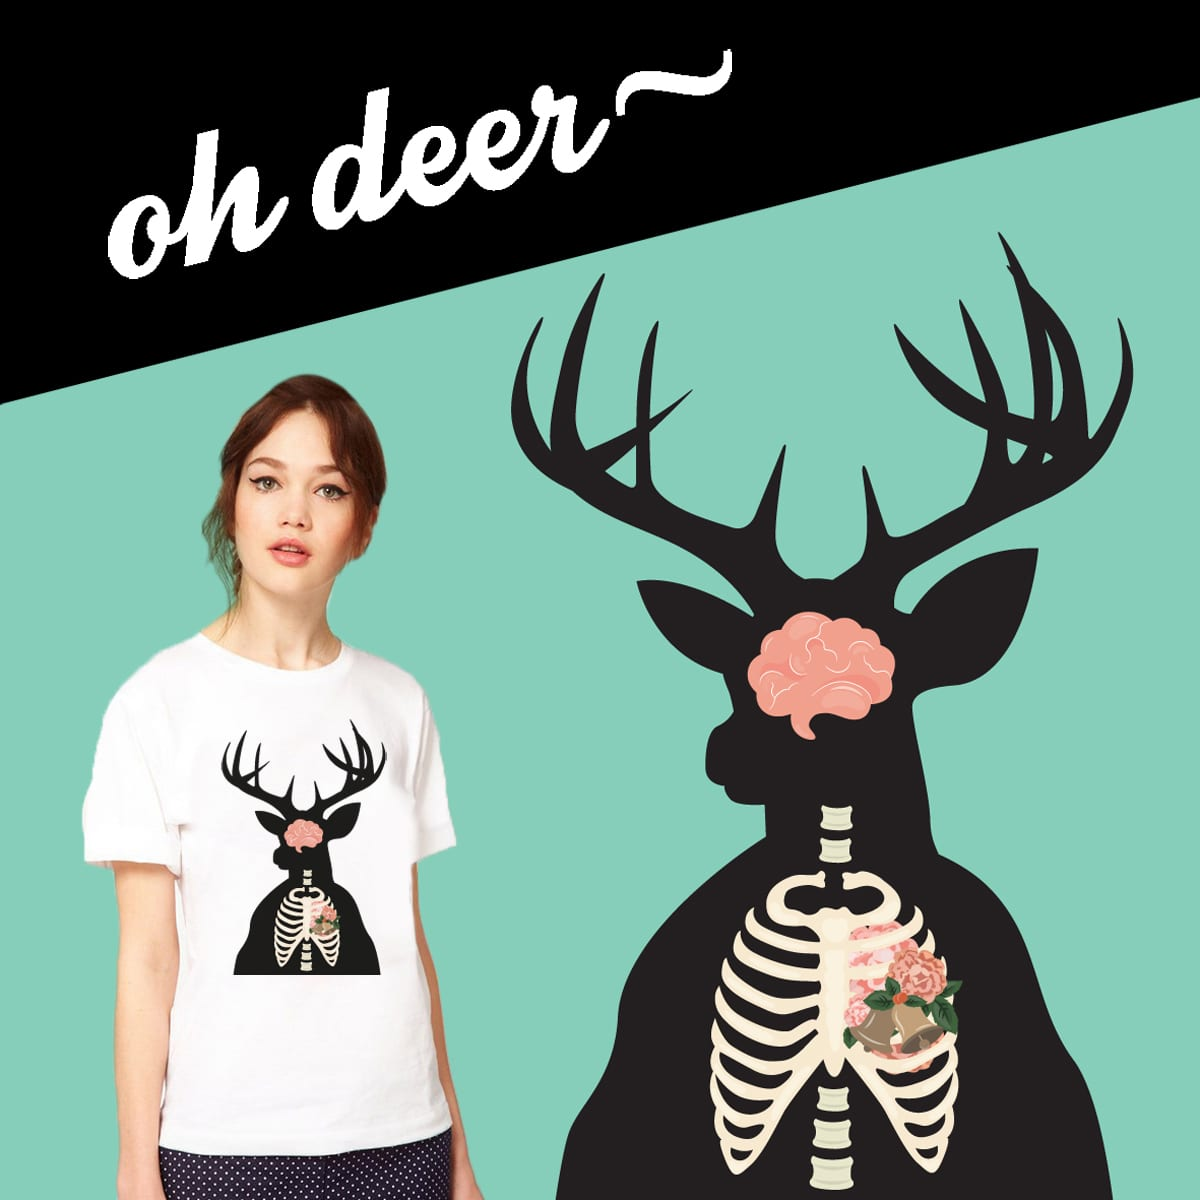 Oh Deer by ultraaviolets on Threadless